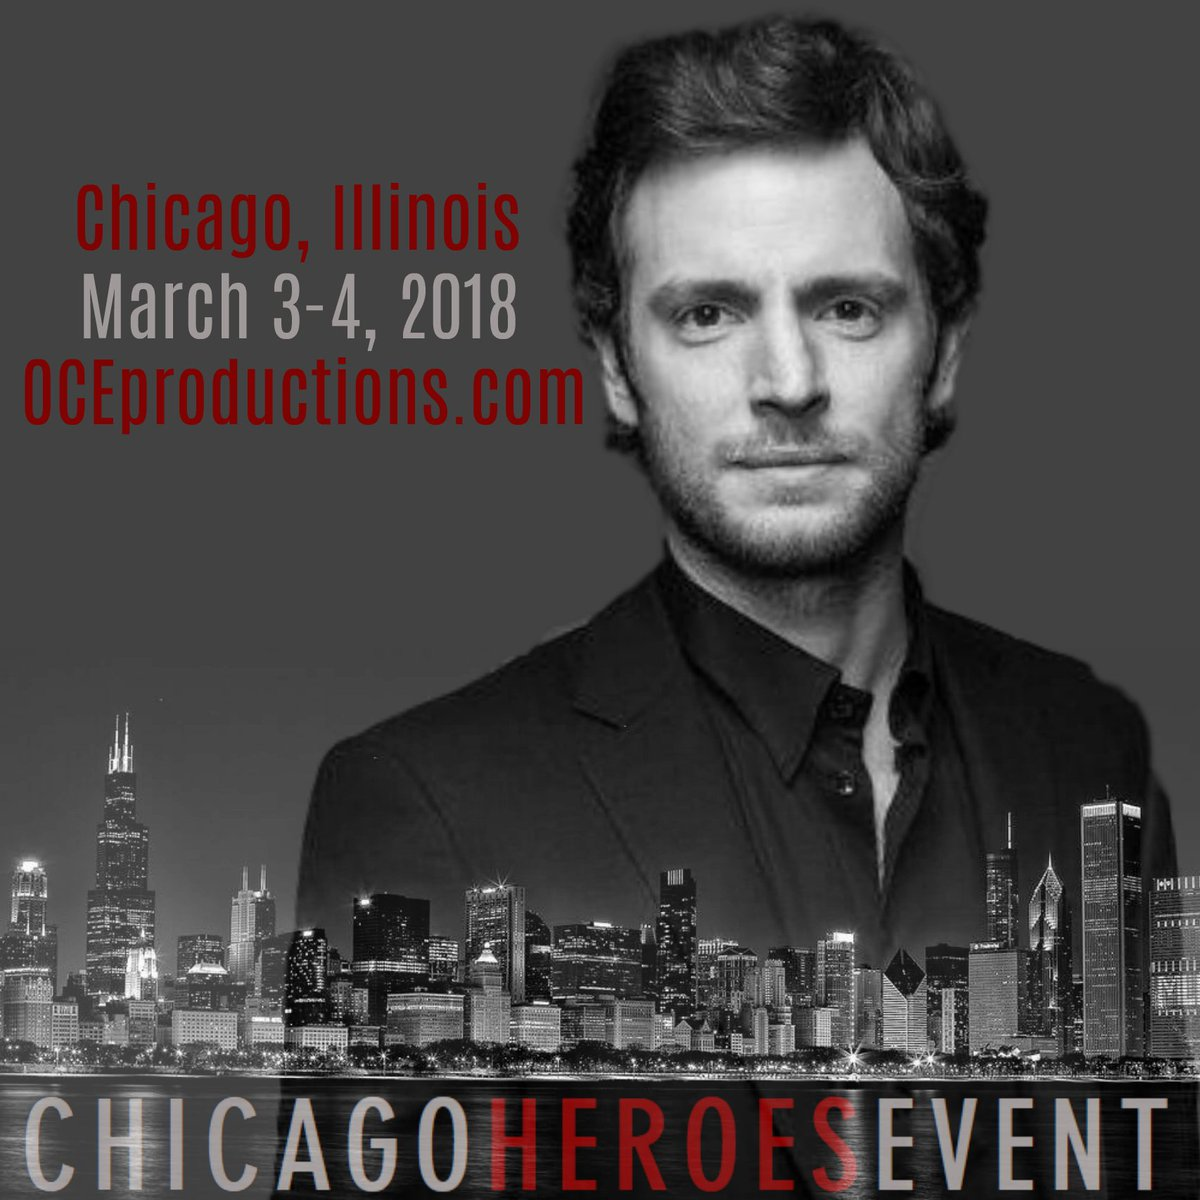 Navy pier on twitter win four 4 tickets to the sunday oceproductions chicago heroes meet and greet and get the chance to meet celebrities like nbcchicagomed nickgehlfuss rt for your chance to win m4hsunfo